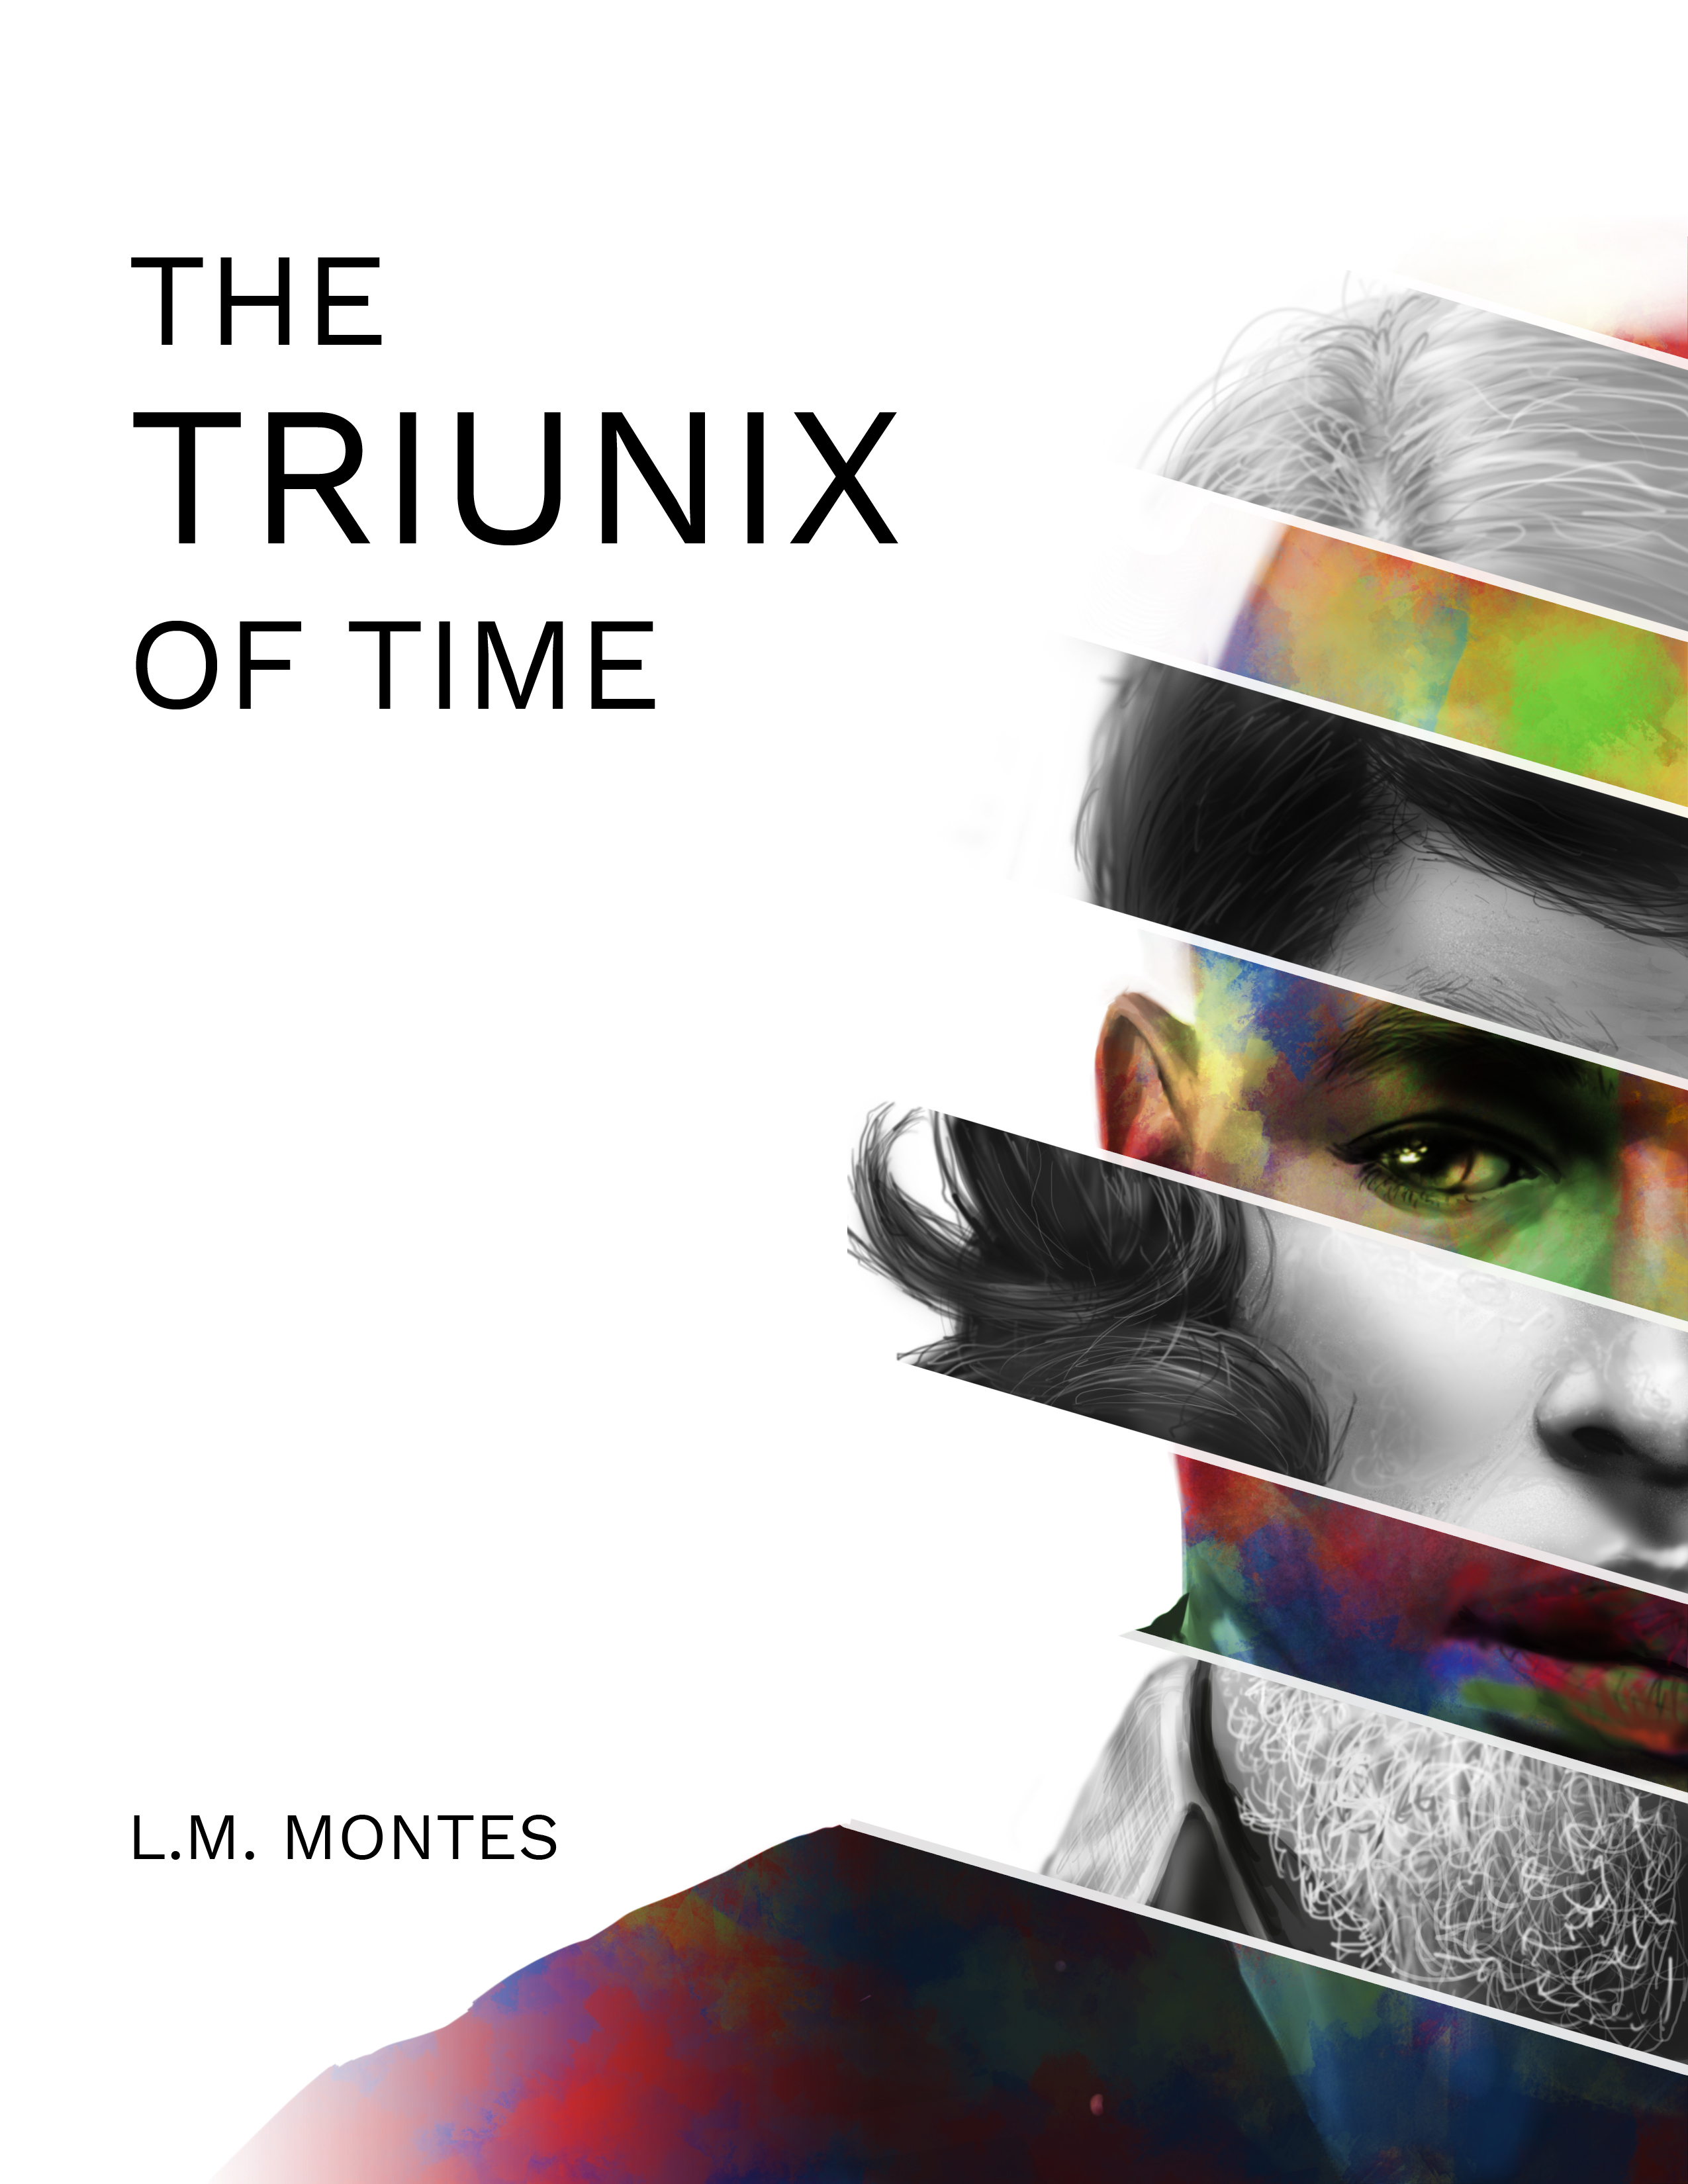 The Triunix of Time: Book 1 in the Time Series by L. M. Montes